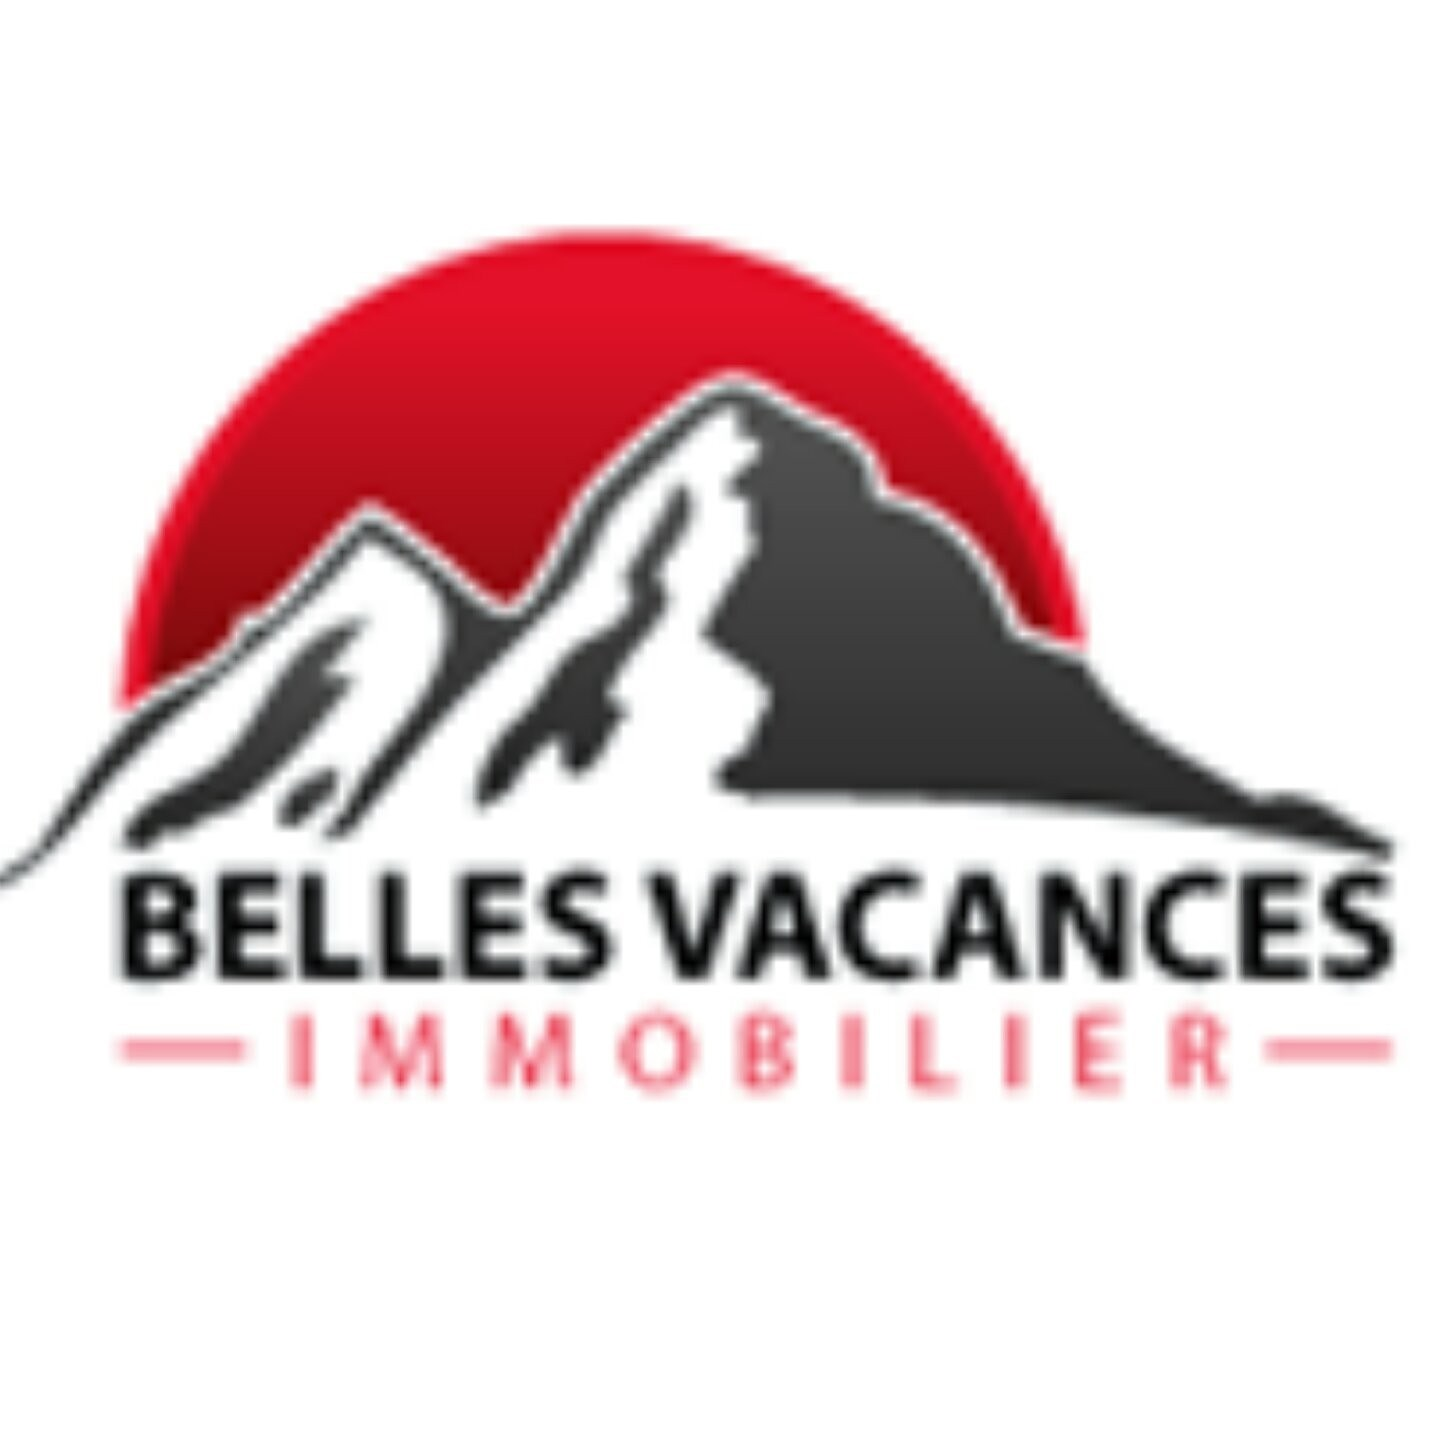 Belles vacances immobilier agence immobili re saint for Agence immobiliere saint girons 09200